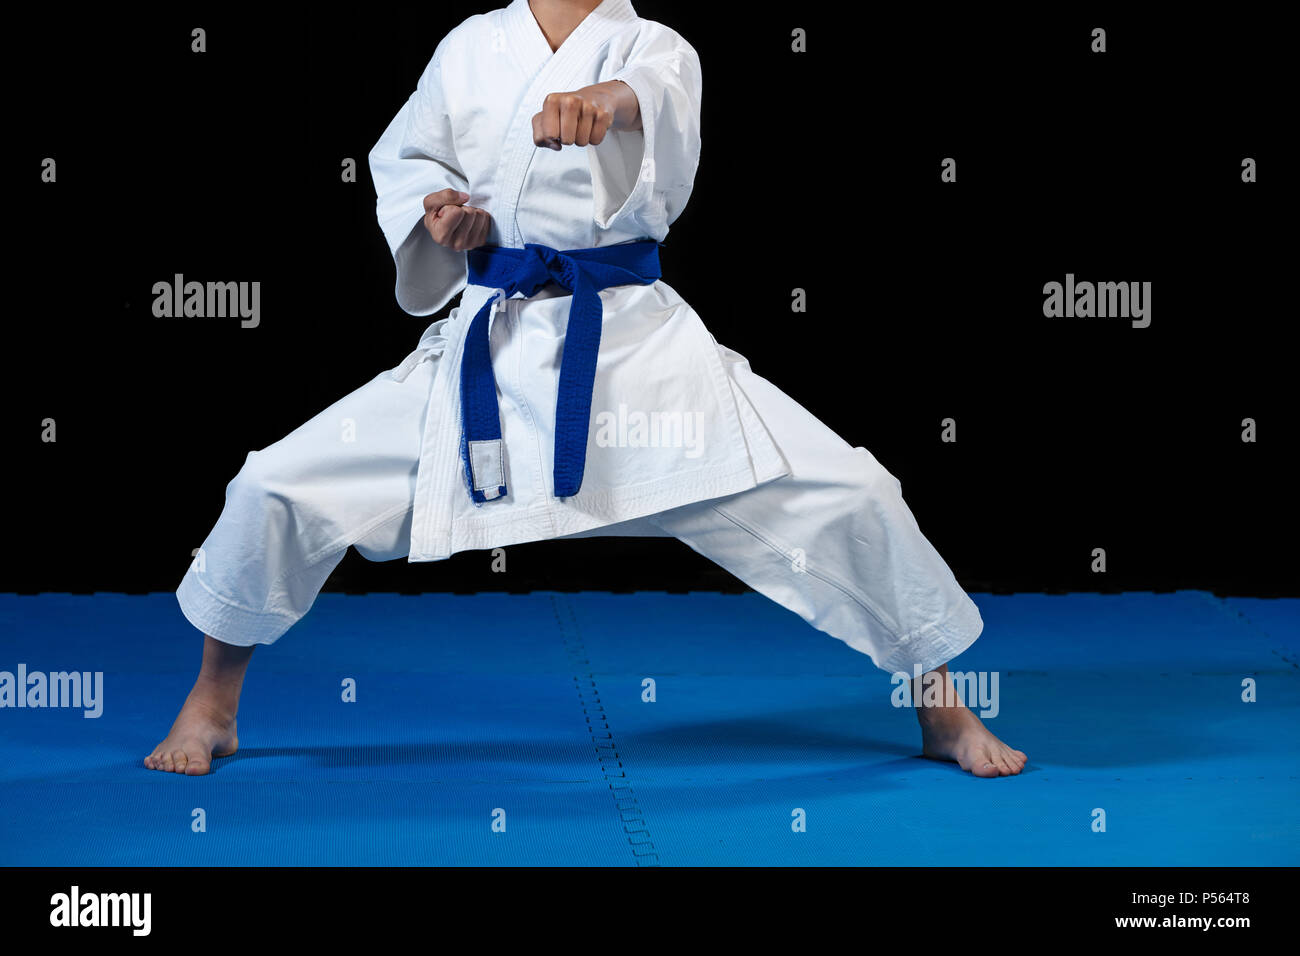 Pre-teen boy doing karate on a black background - Stock Image